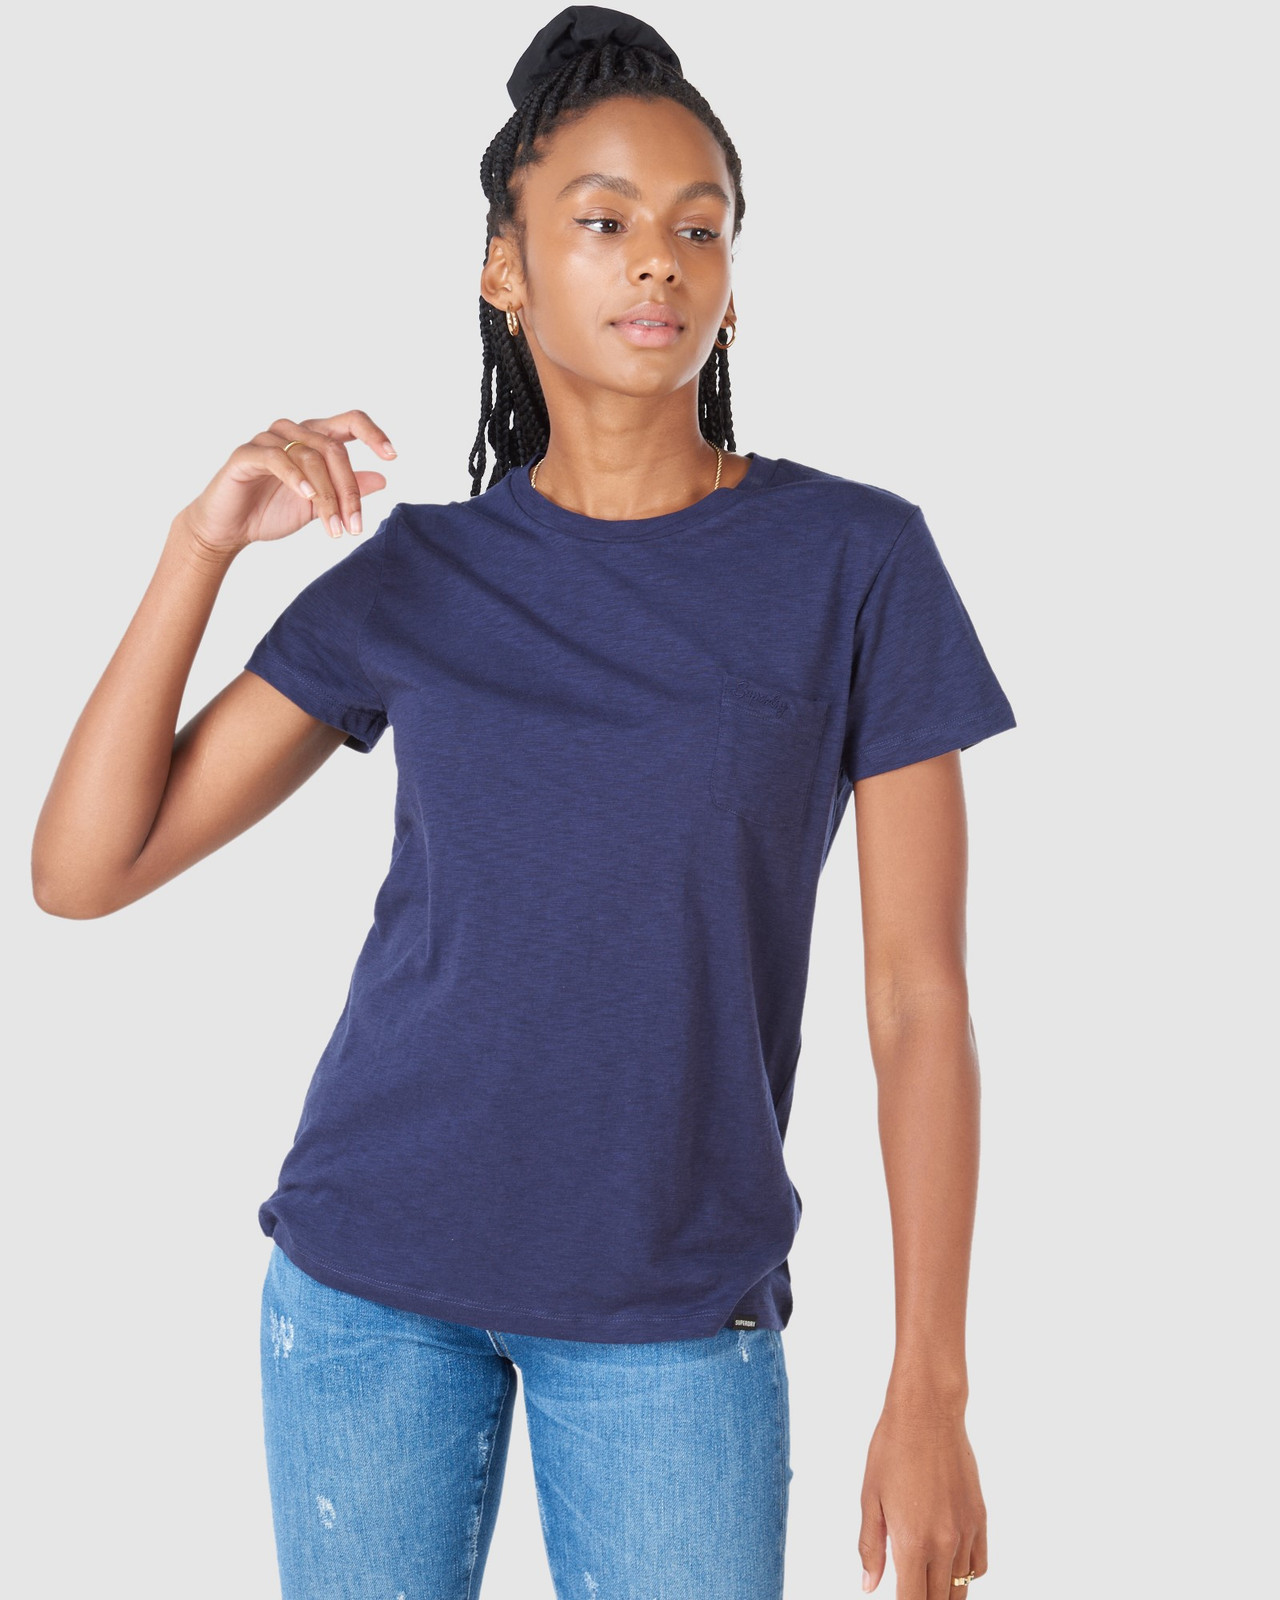 Superdry Womens SCRIPTED CREW TEE Navy Plain T Shirts 2